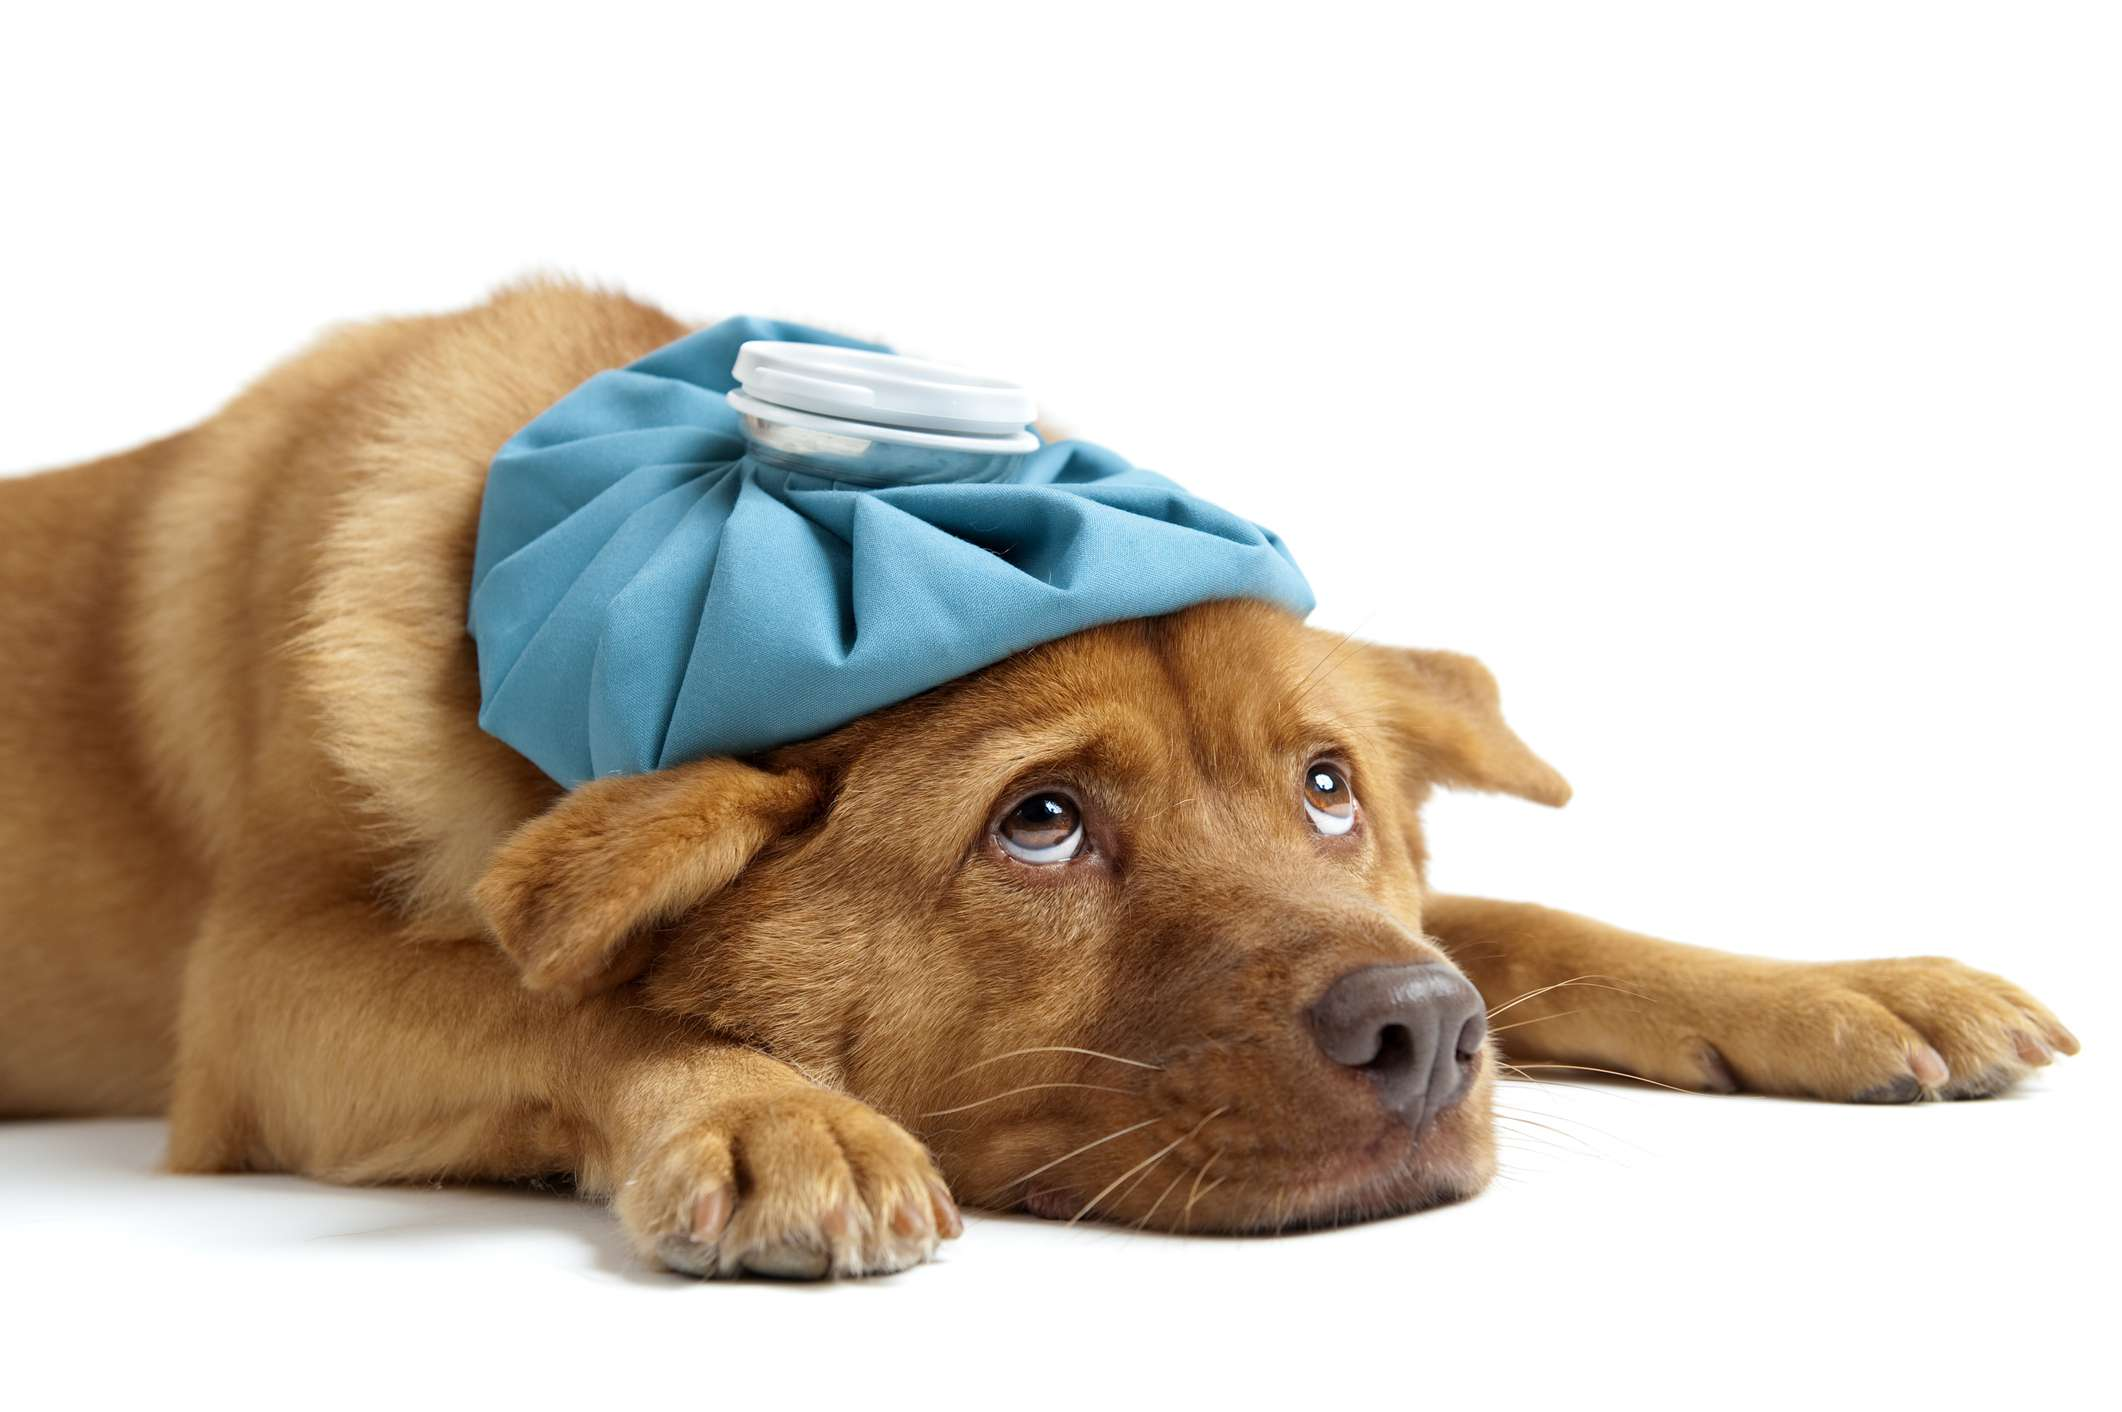 Dog with cold compress on head and neck.